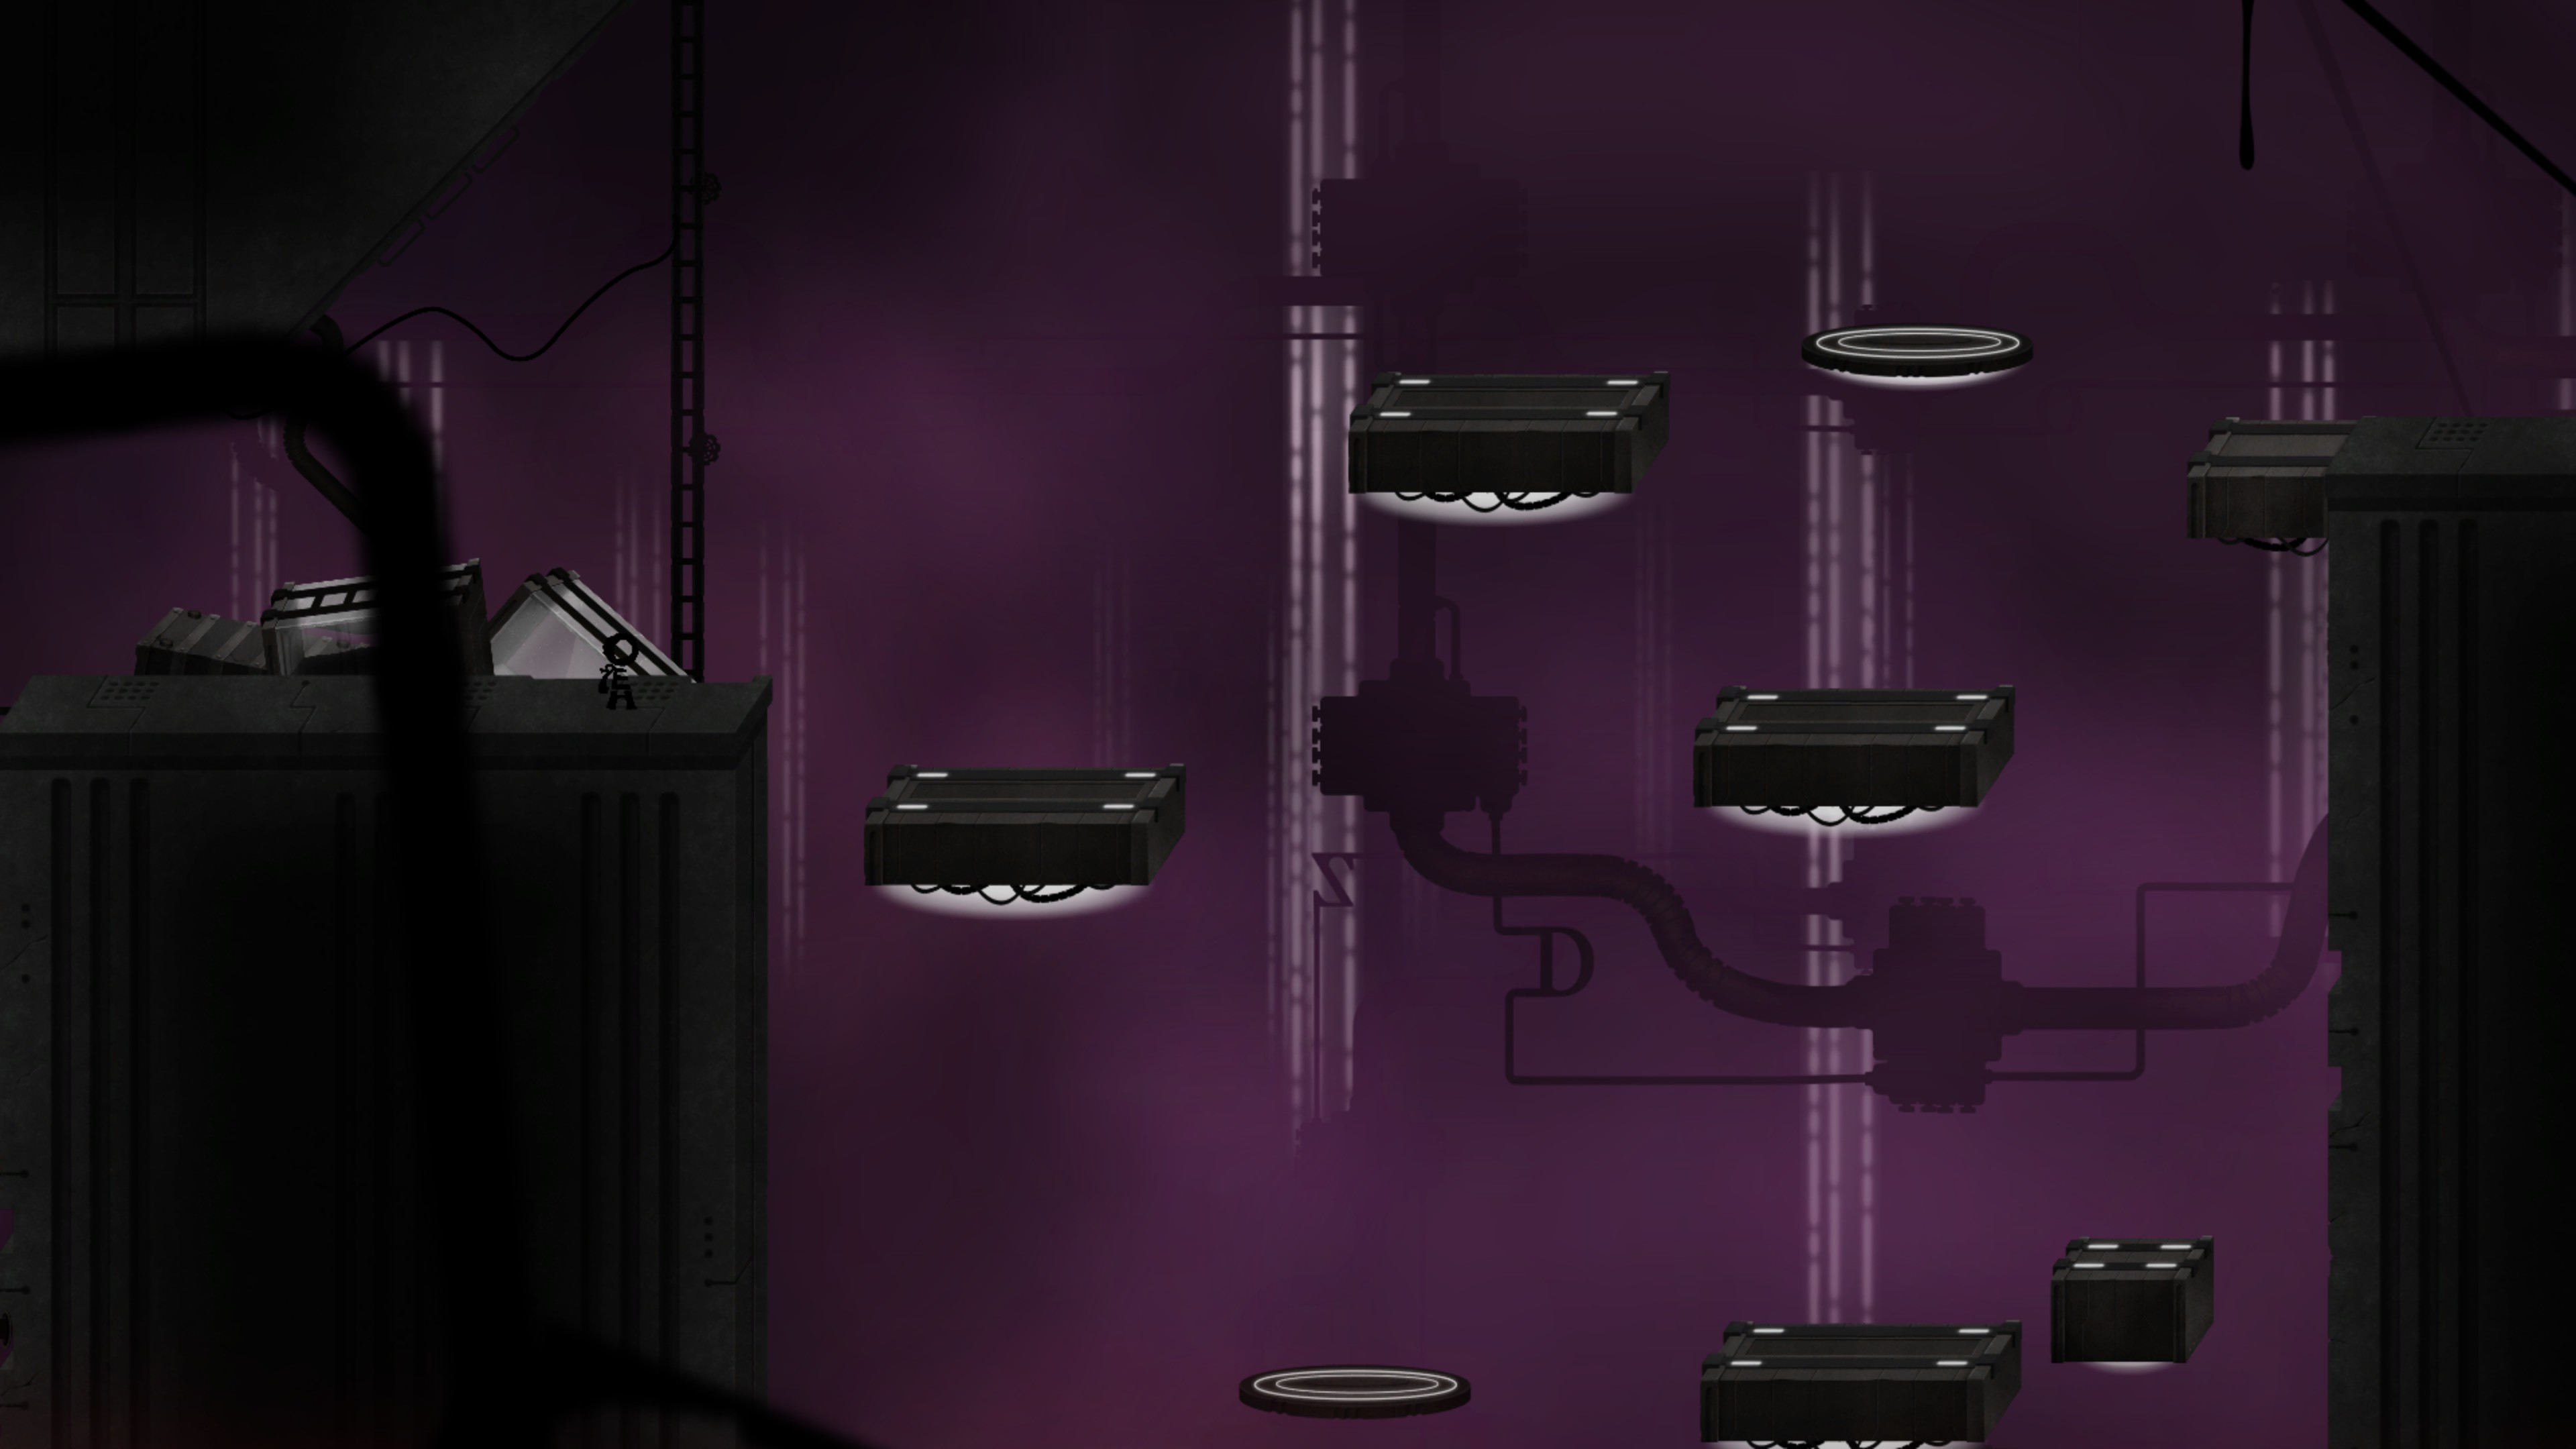 main character stands before a gap filled with 4 solid rectangle platforms and 2 floating circle platforms